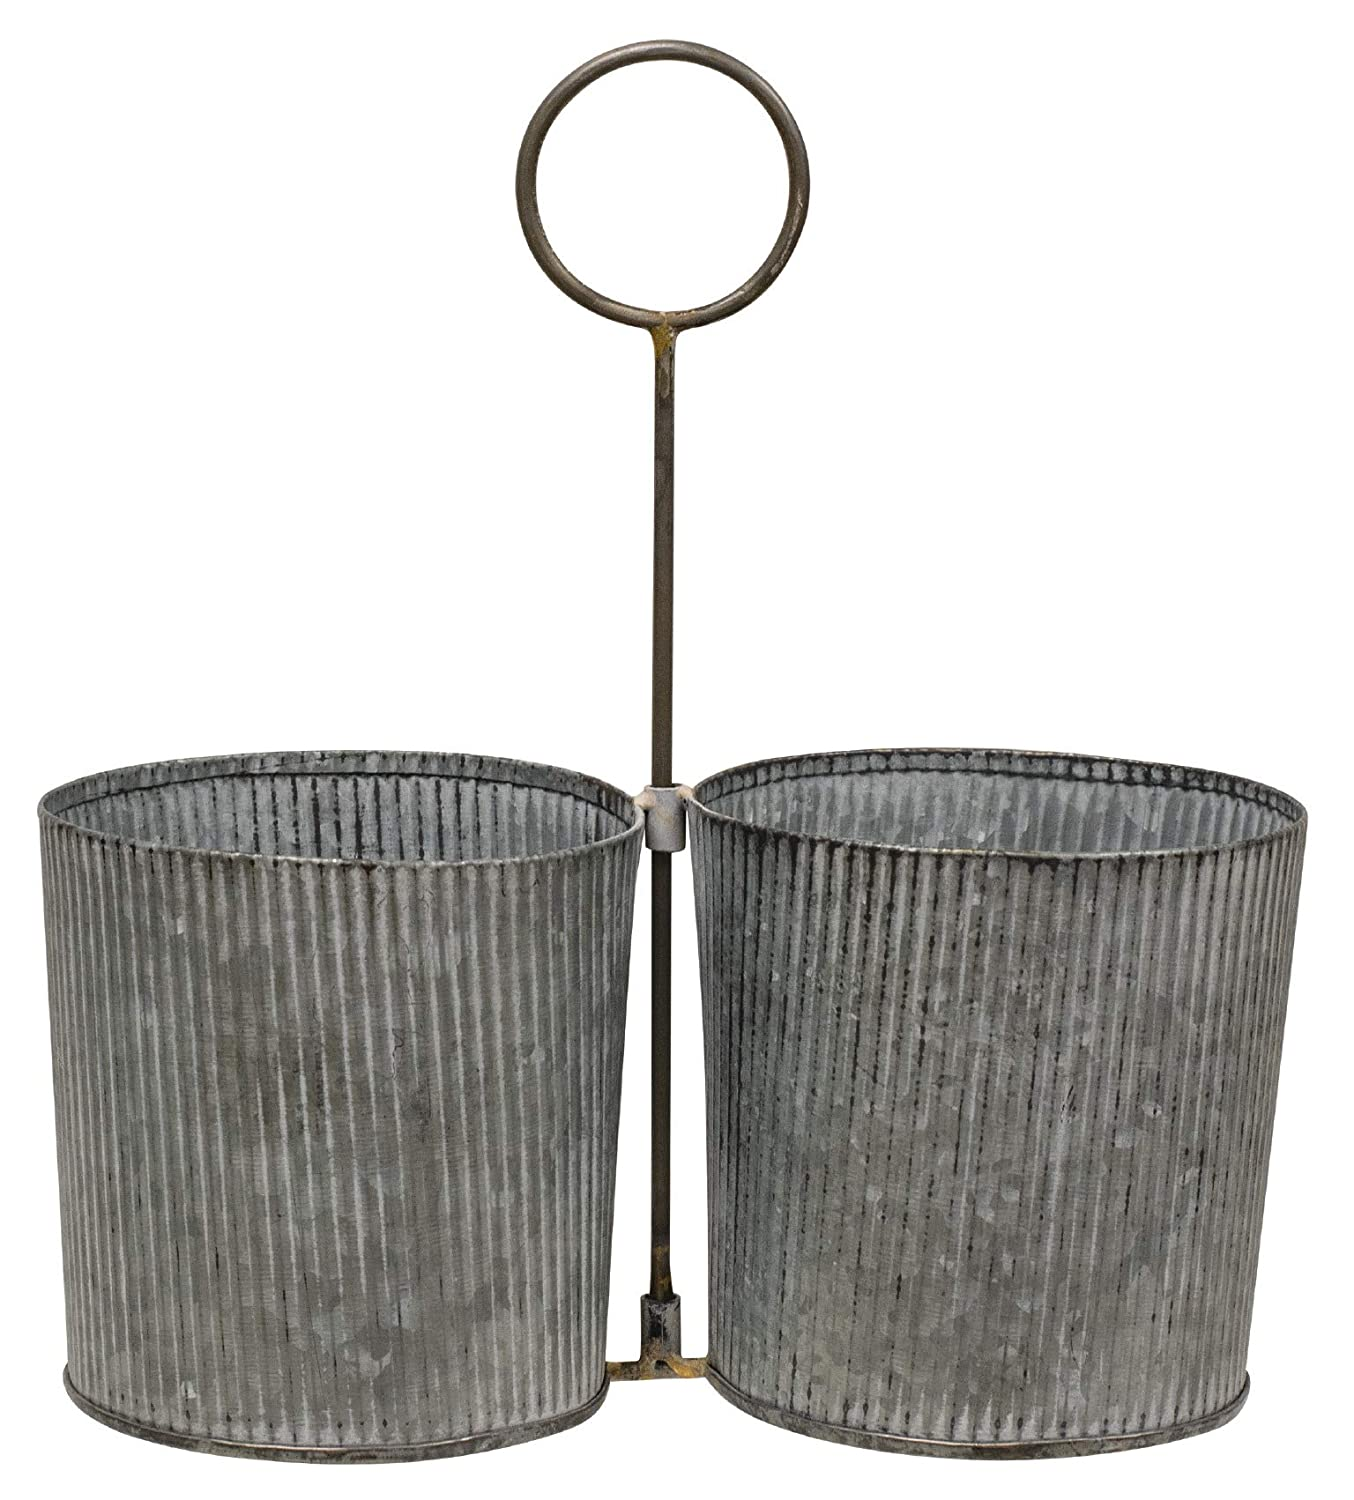 Craft House Designs Galvanized Desk Organizer Accent or Utensil Caddy for Rustic Farmhouse Industrial Style